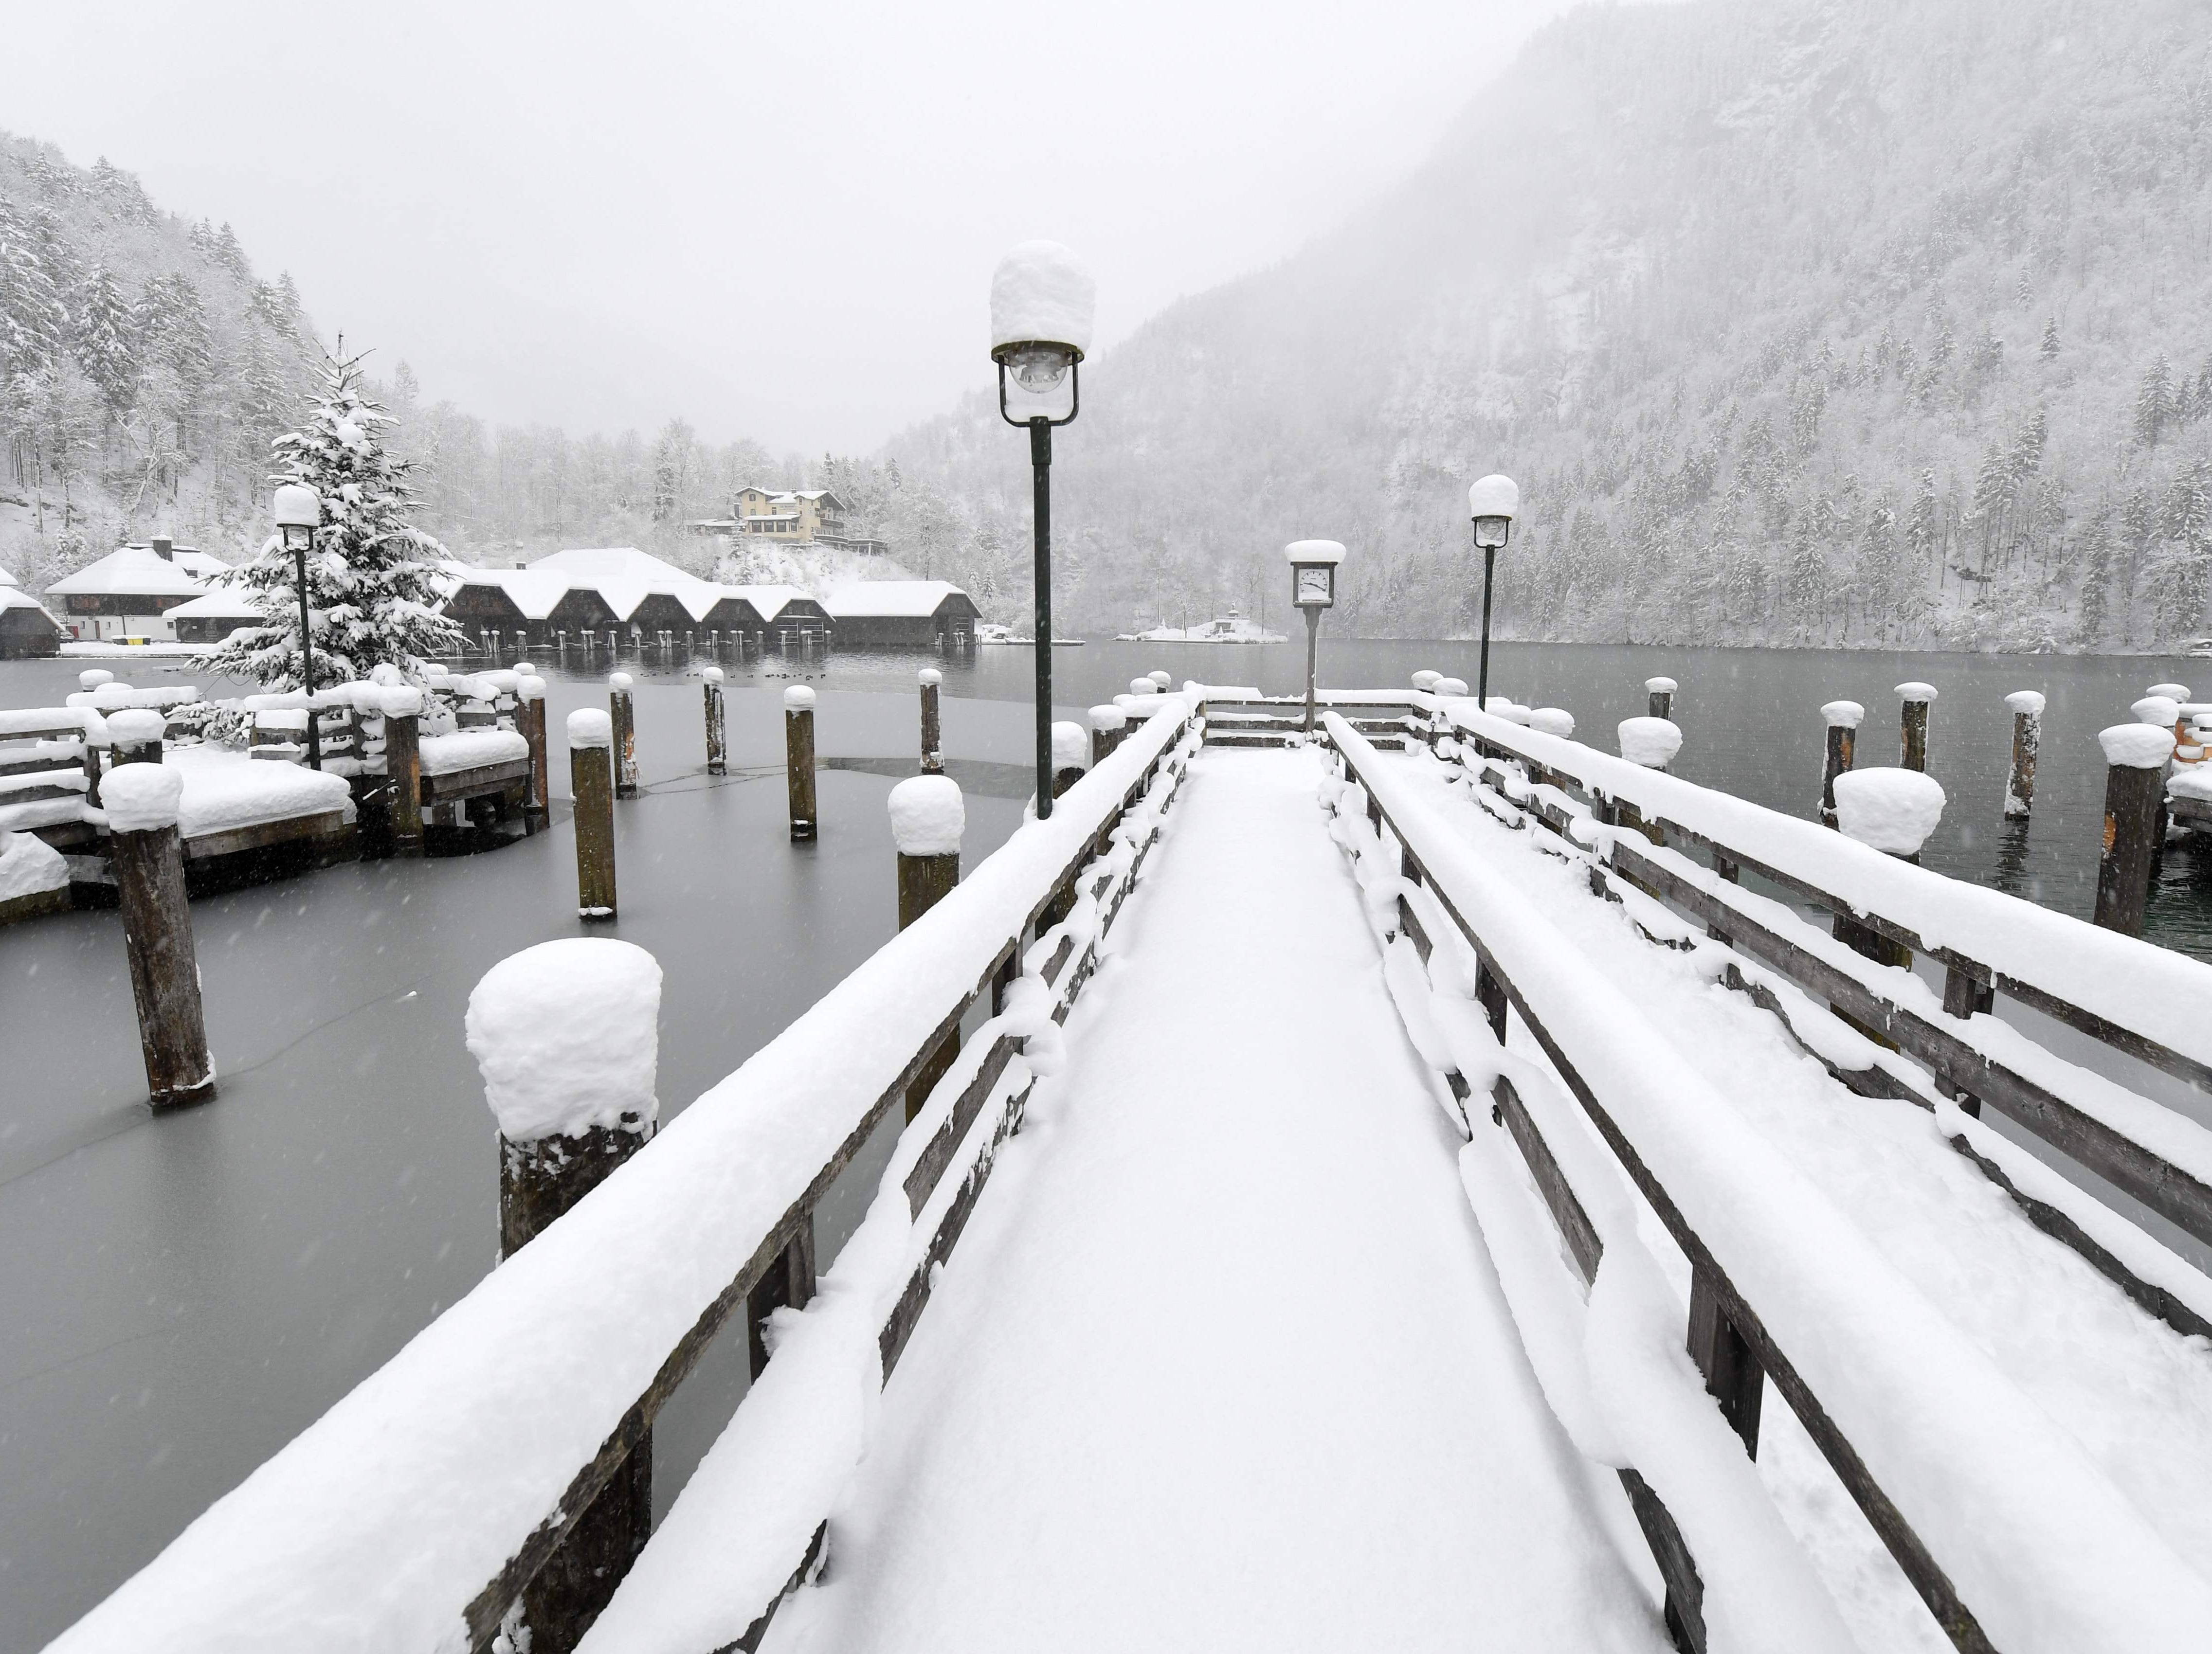 Snow covers a pier at Lake Koenigssee in Berchtesgaden, Germany.